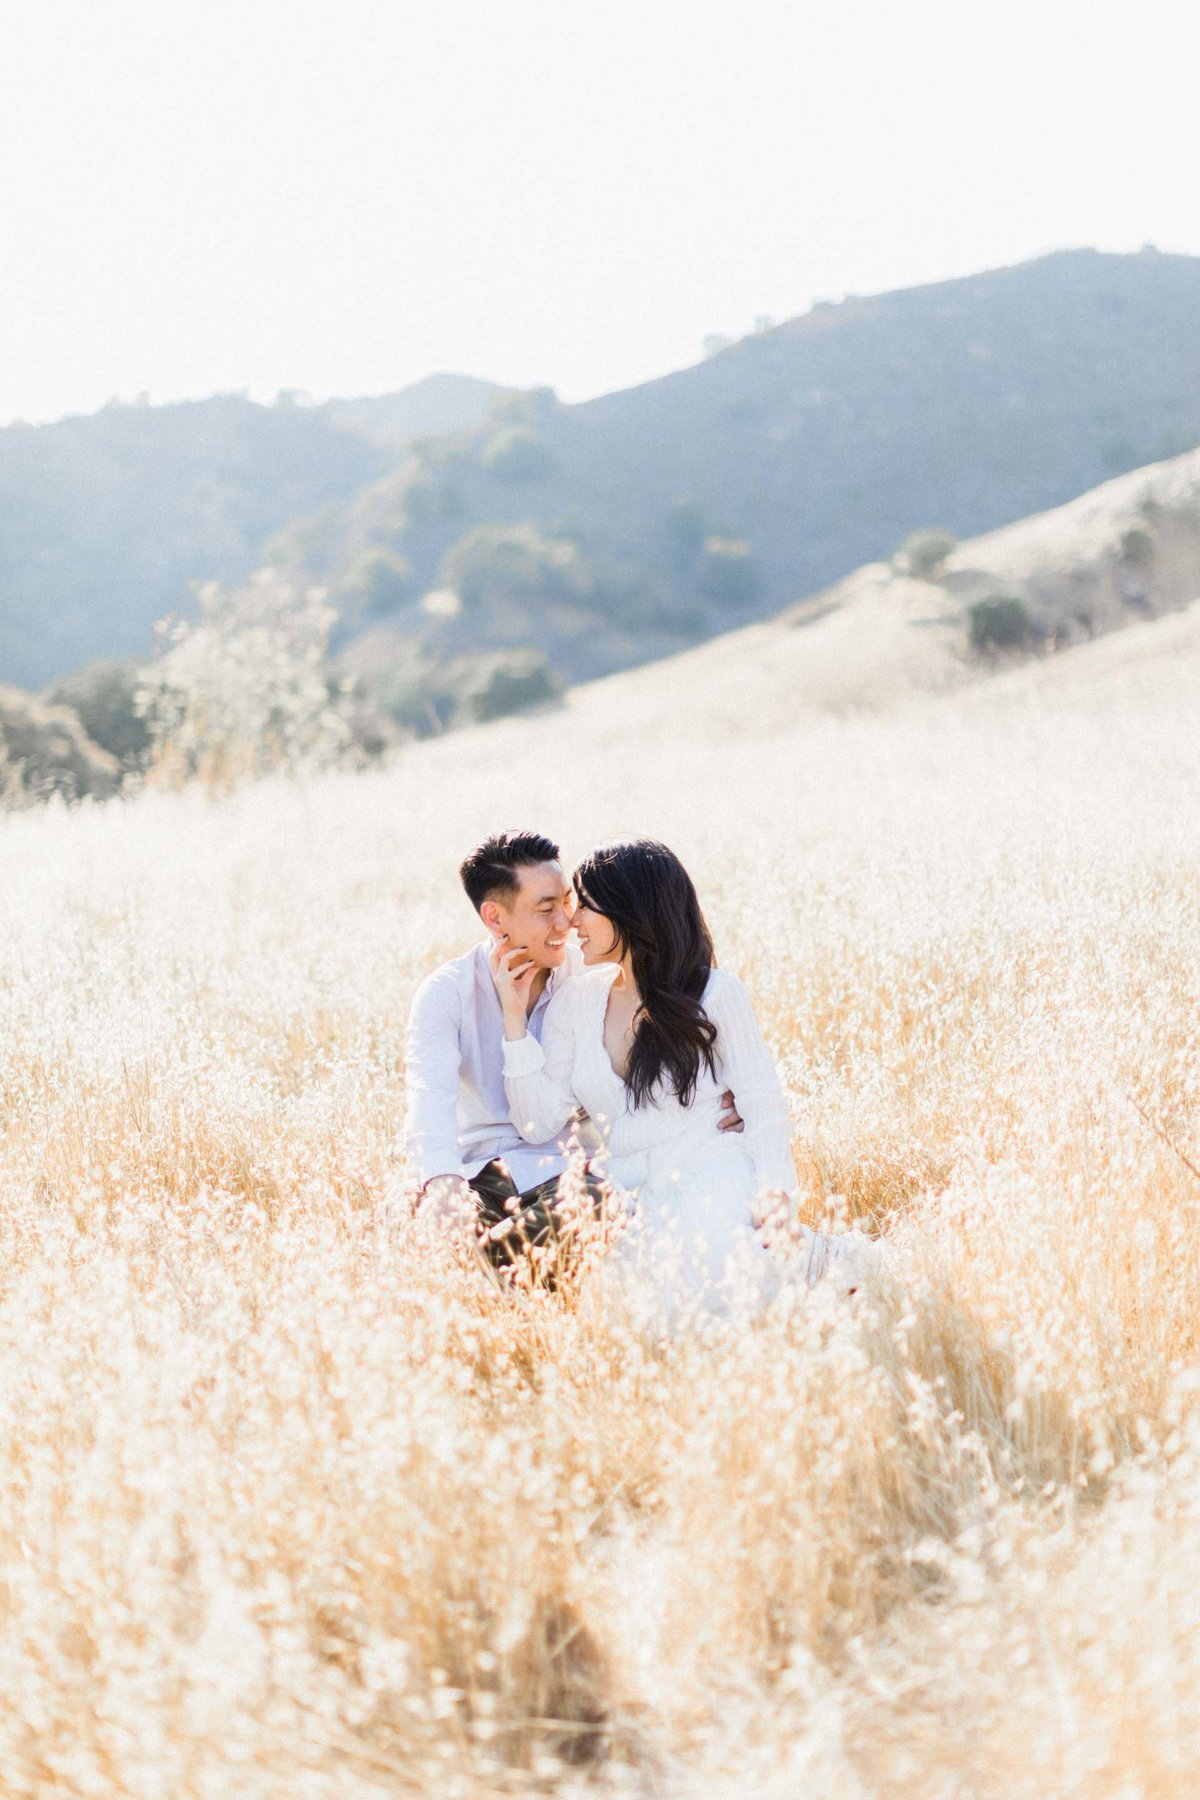 Malibu-Los-Angeles-Engagement-Photographer-14-DT